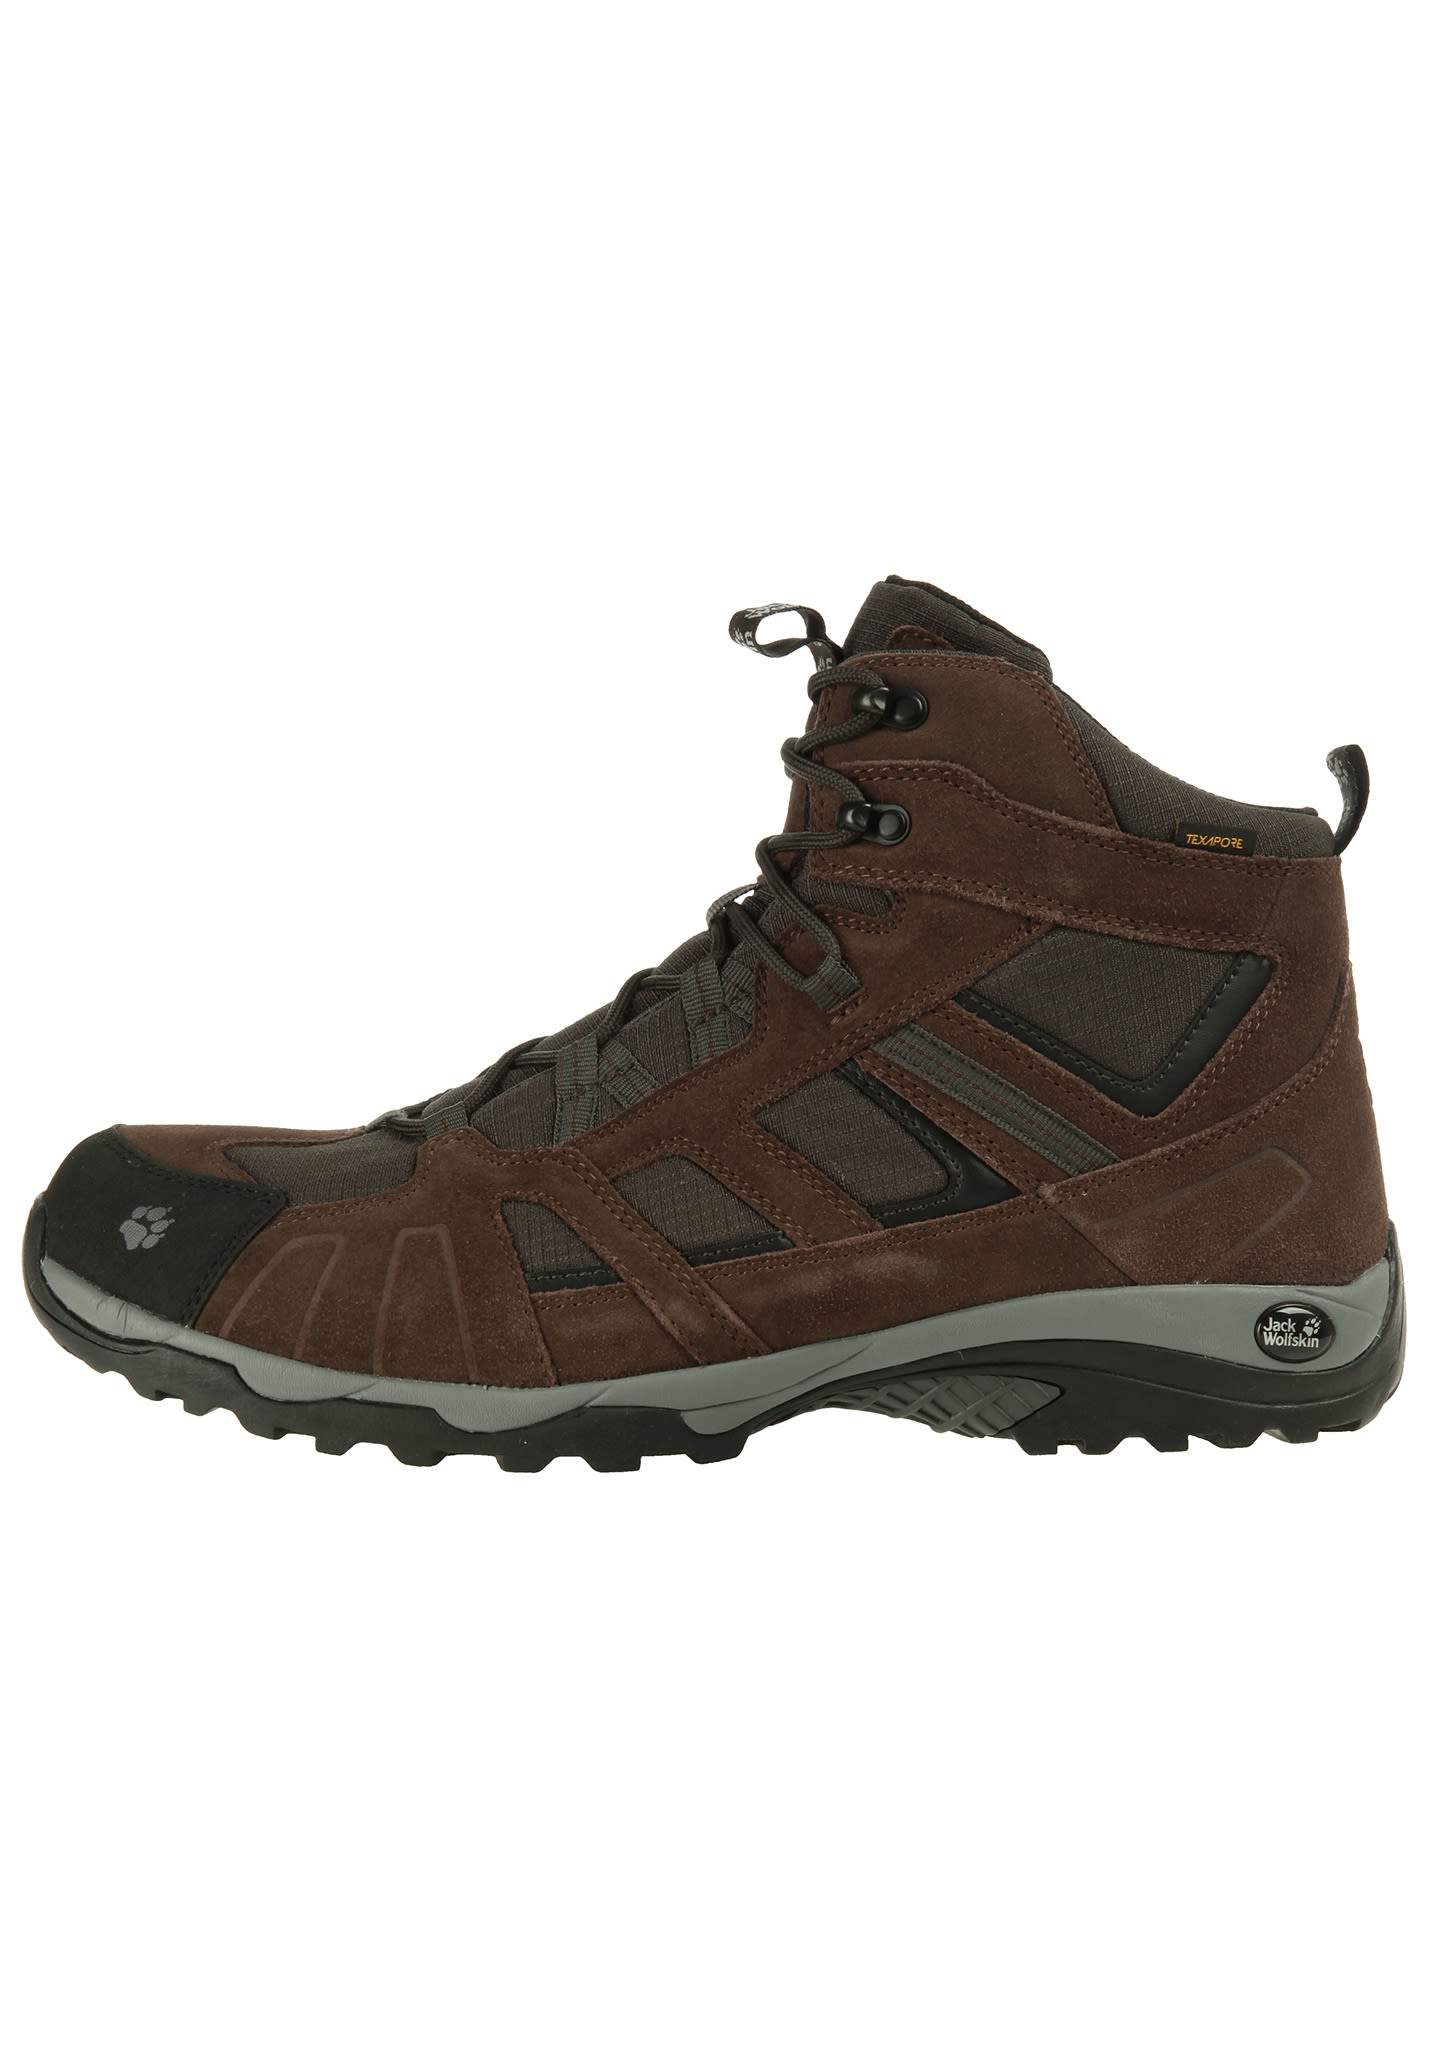 39712ecb32 Jack Wolfskin Vojo Hike Mid Texapore - Trekking Shoes for Men - Brown -  Planet Sports